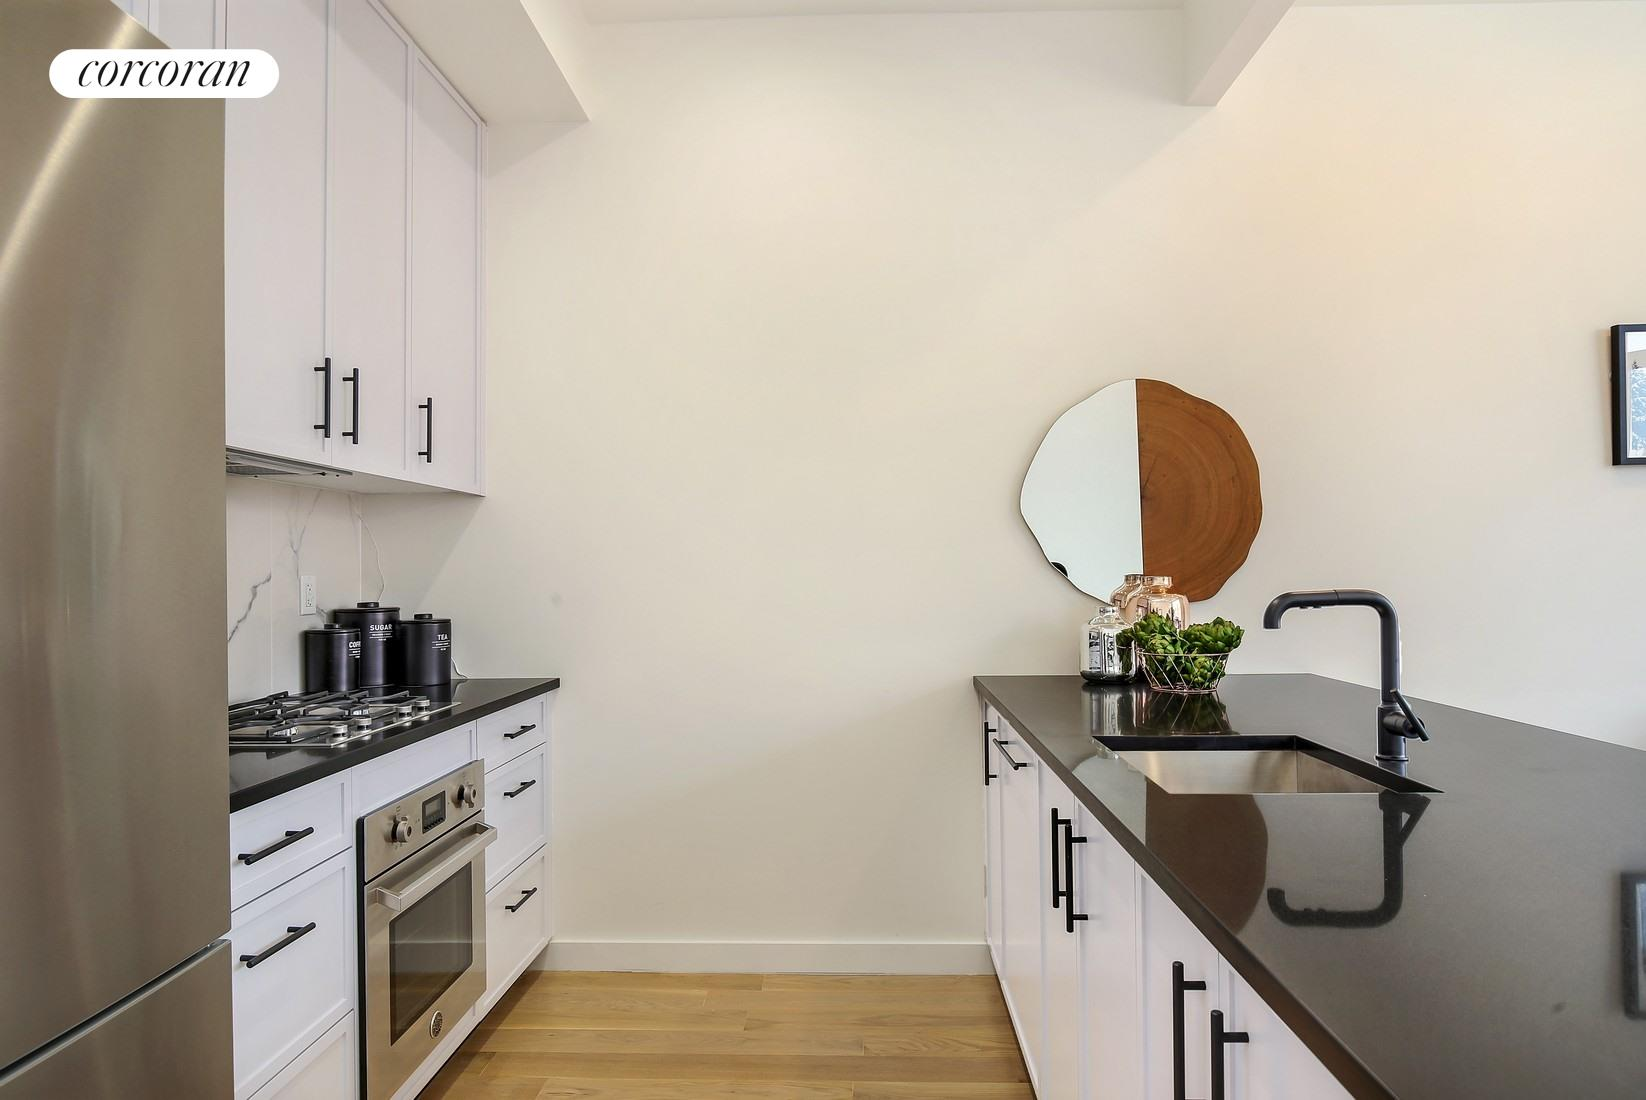 224-230 Clifton Place, 3D, Kitchen